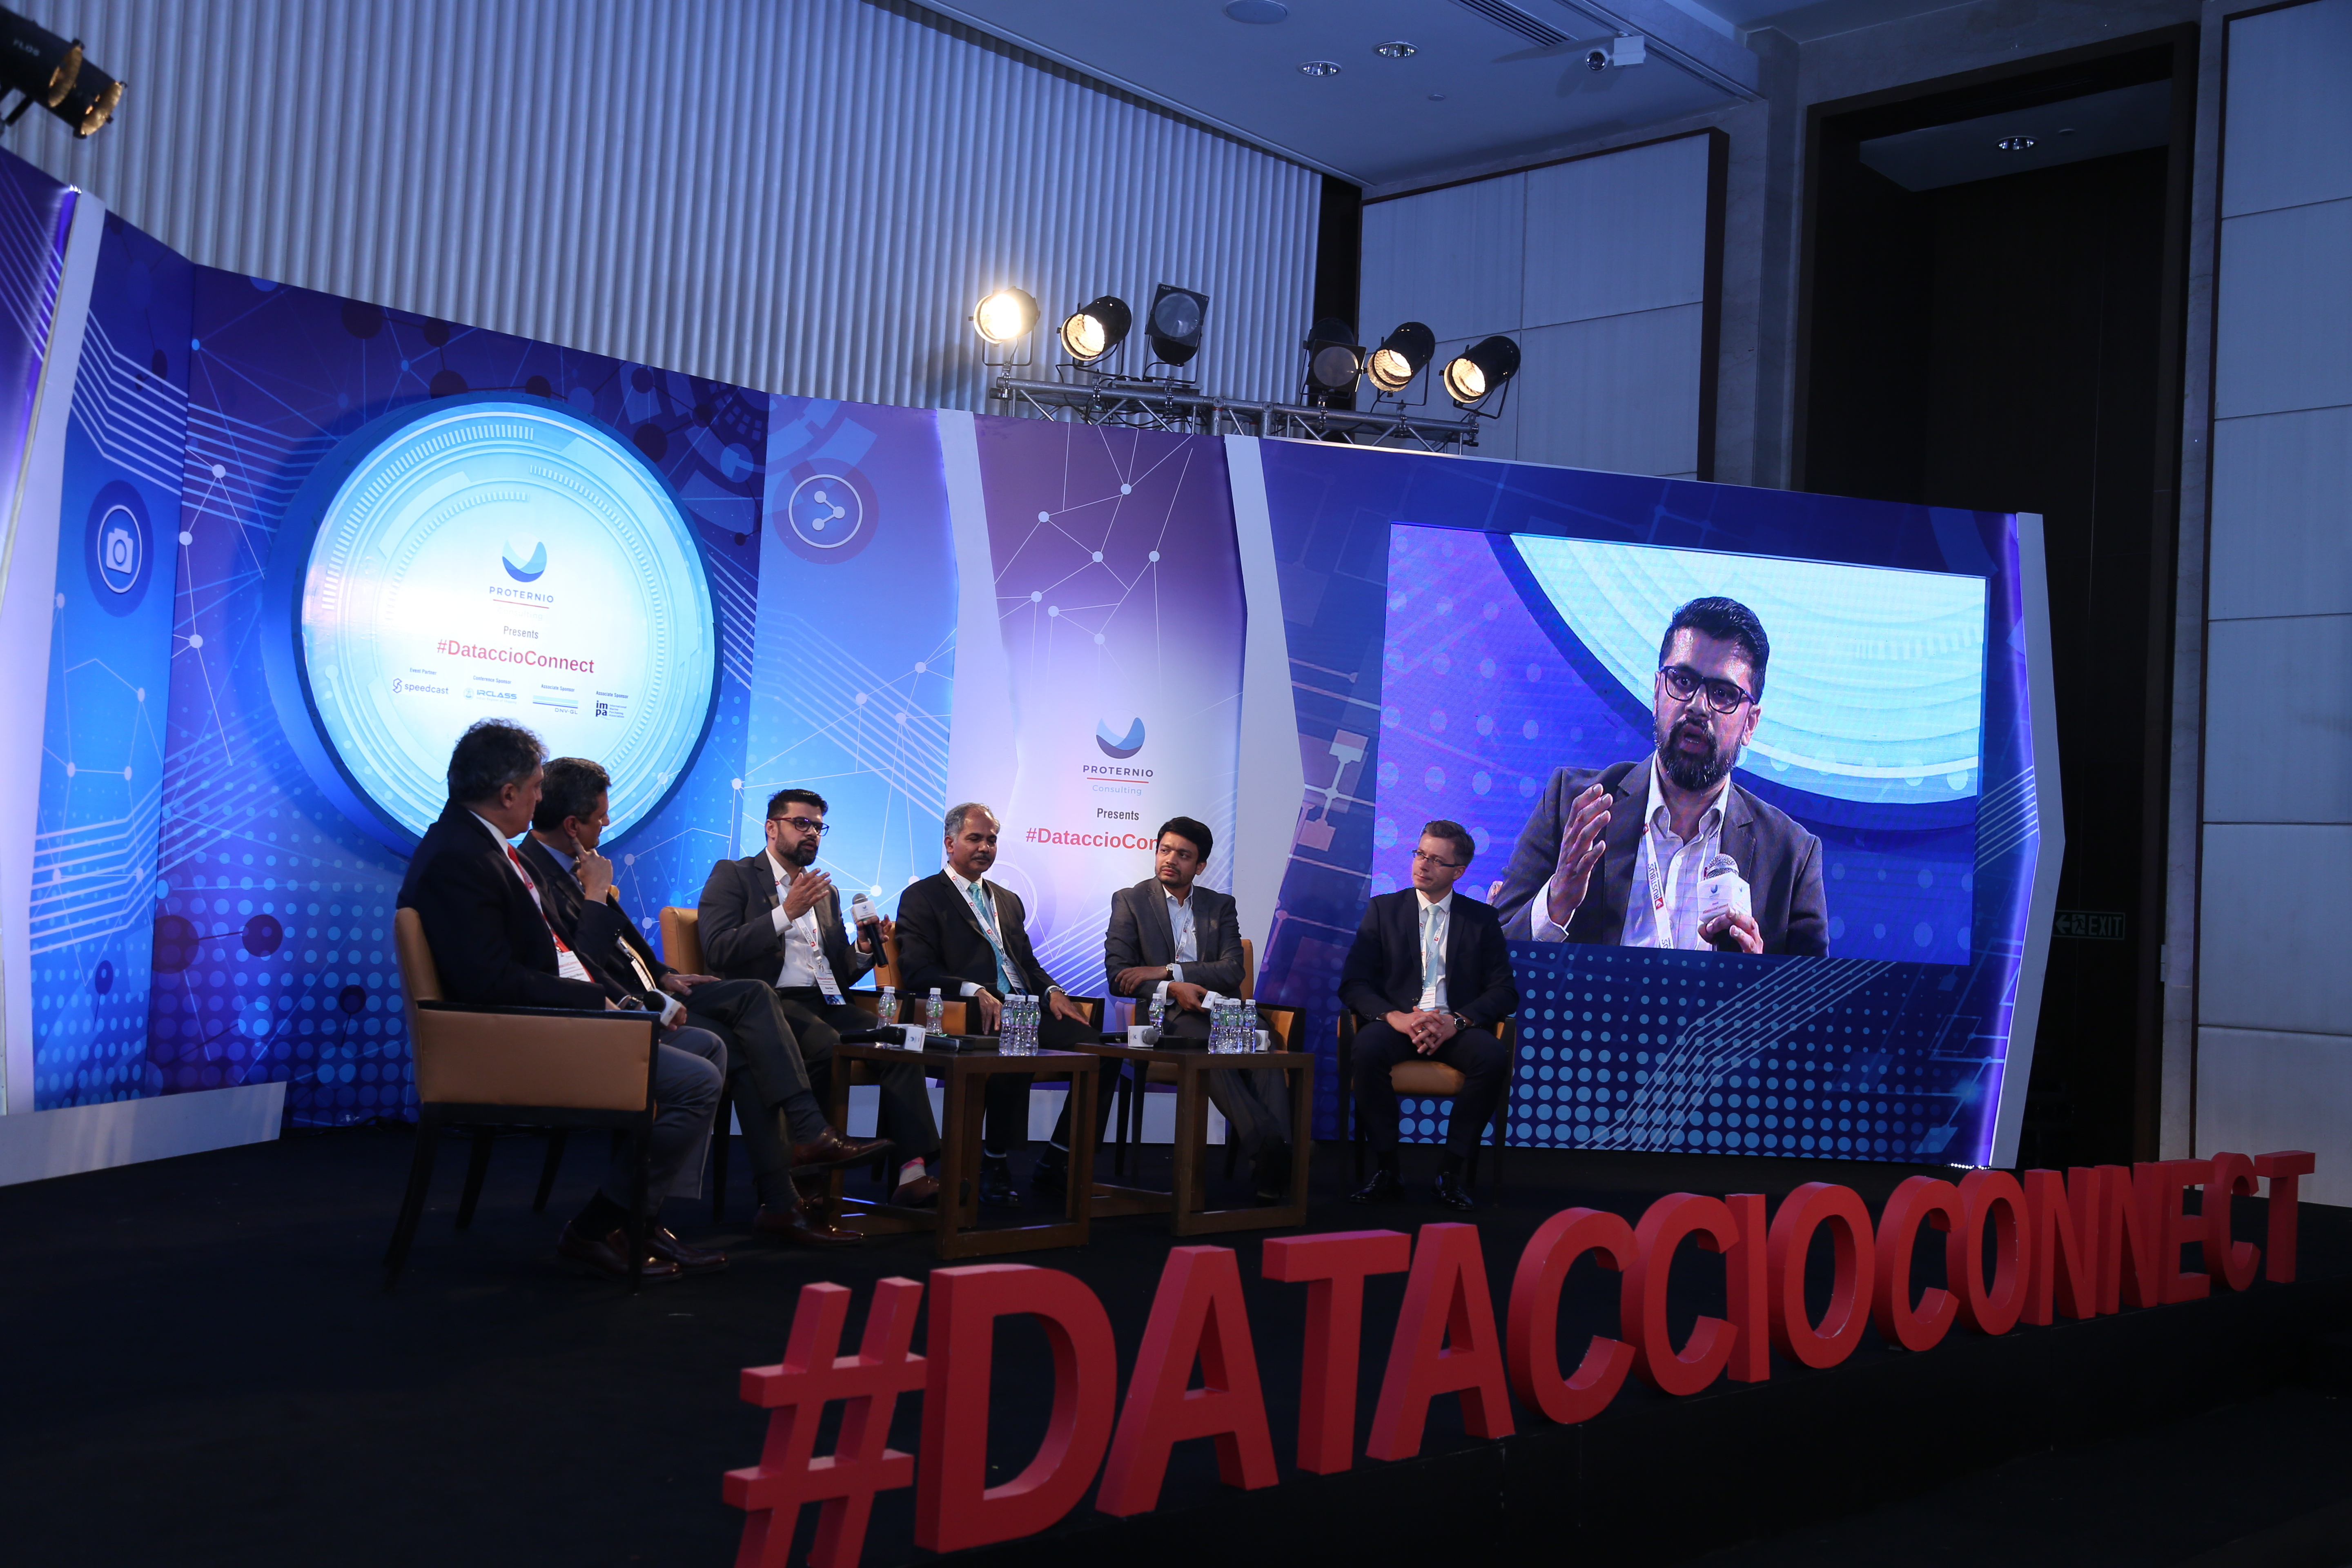 """""""Collaborate, Innovate, Digitise"""" - Industry Leaders Offer Perspectives on the Digitalisation Wave at #DataccioConnect"""